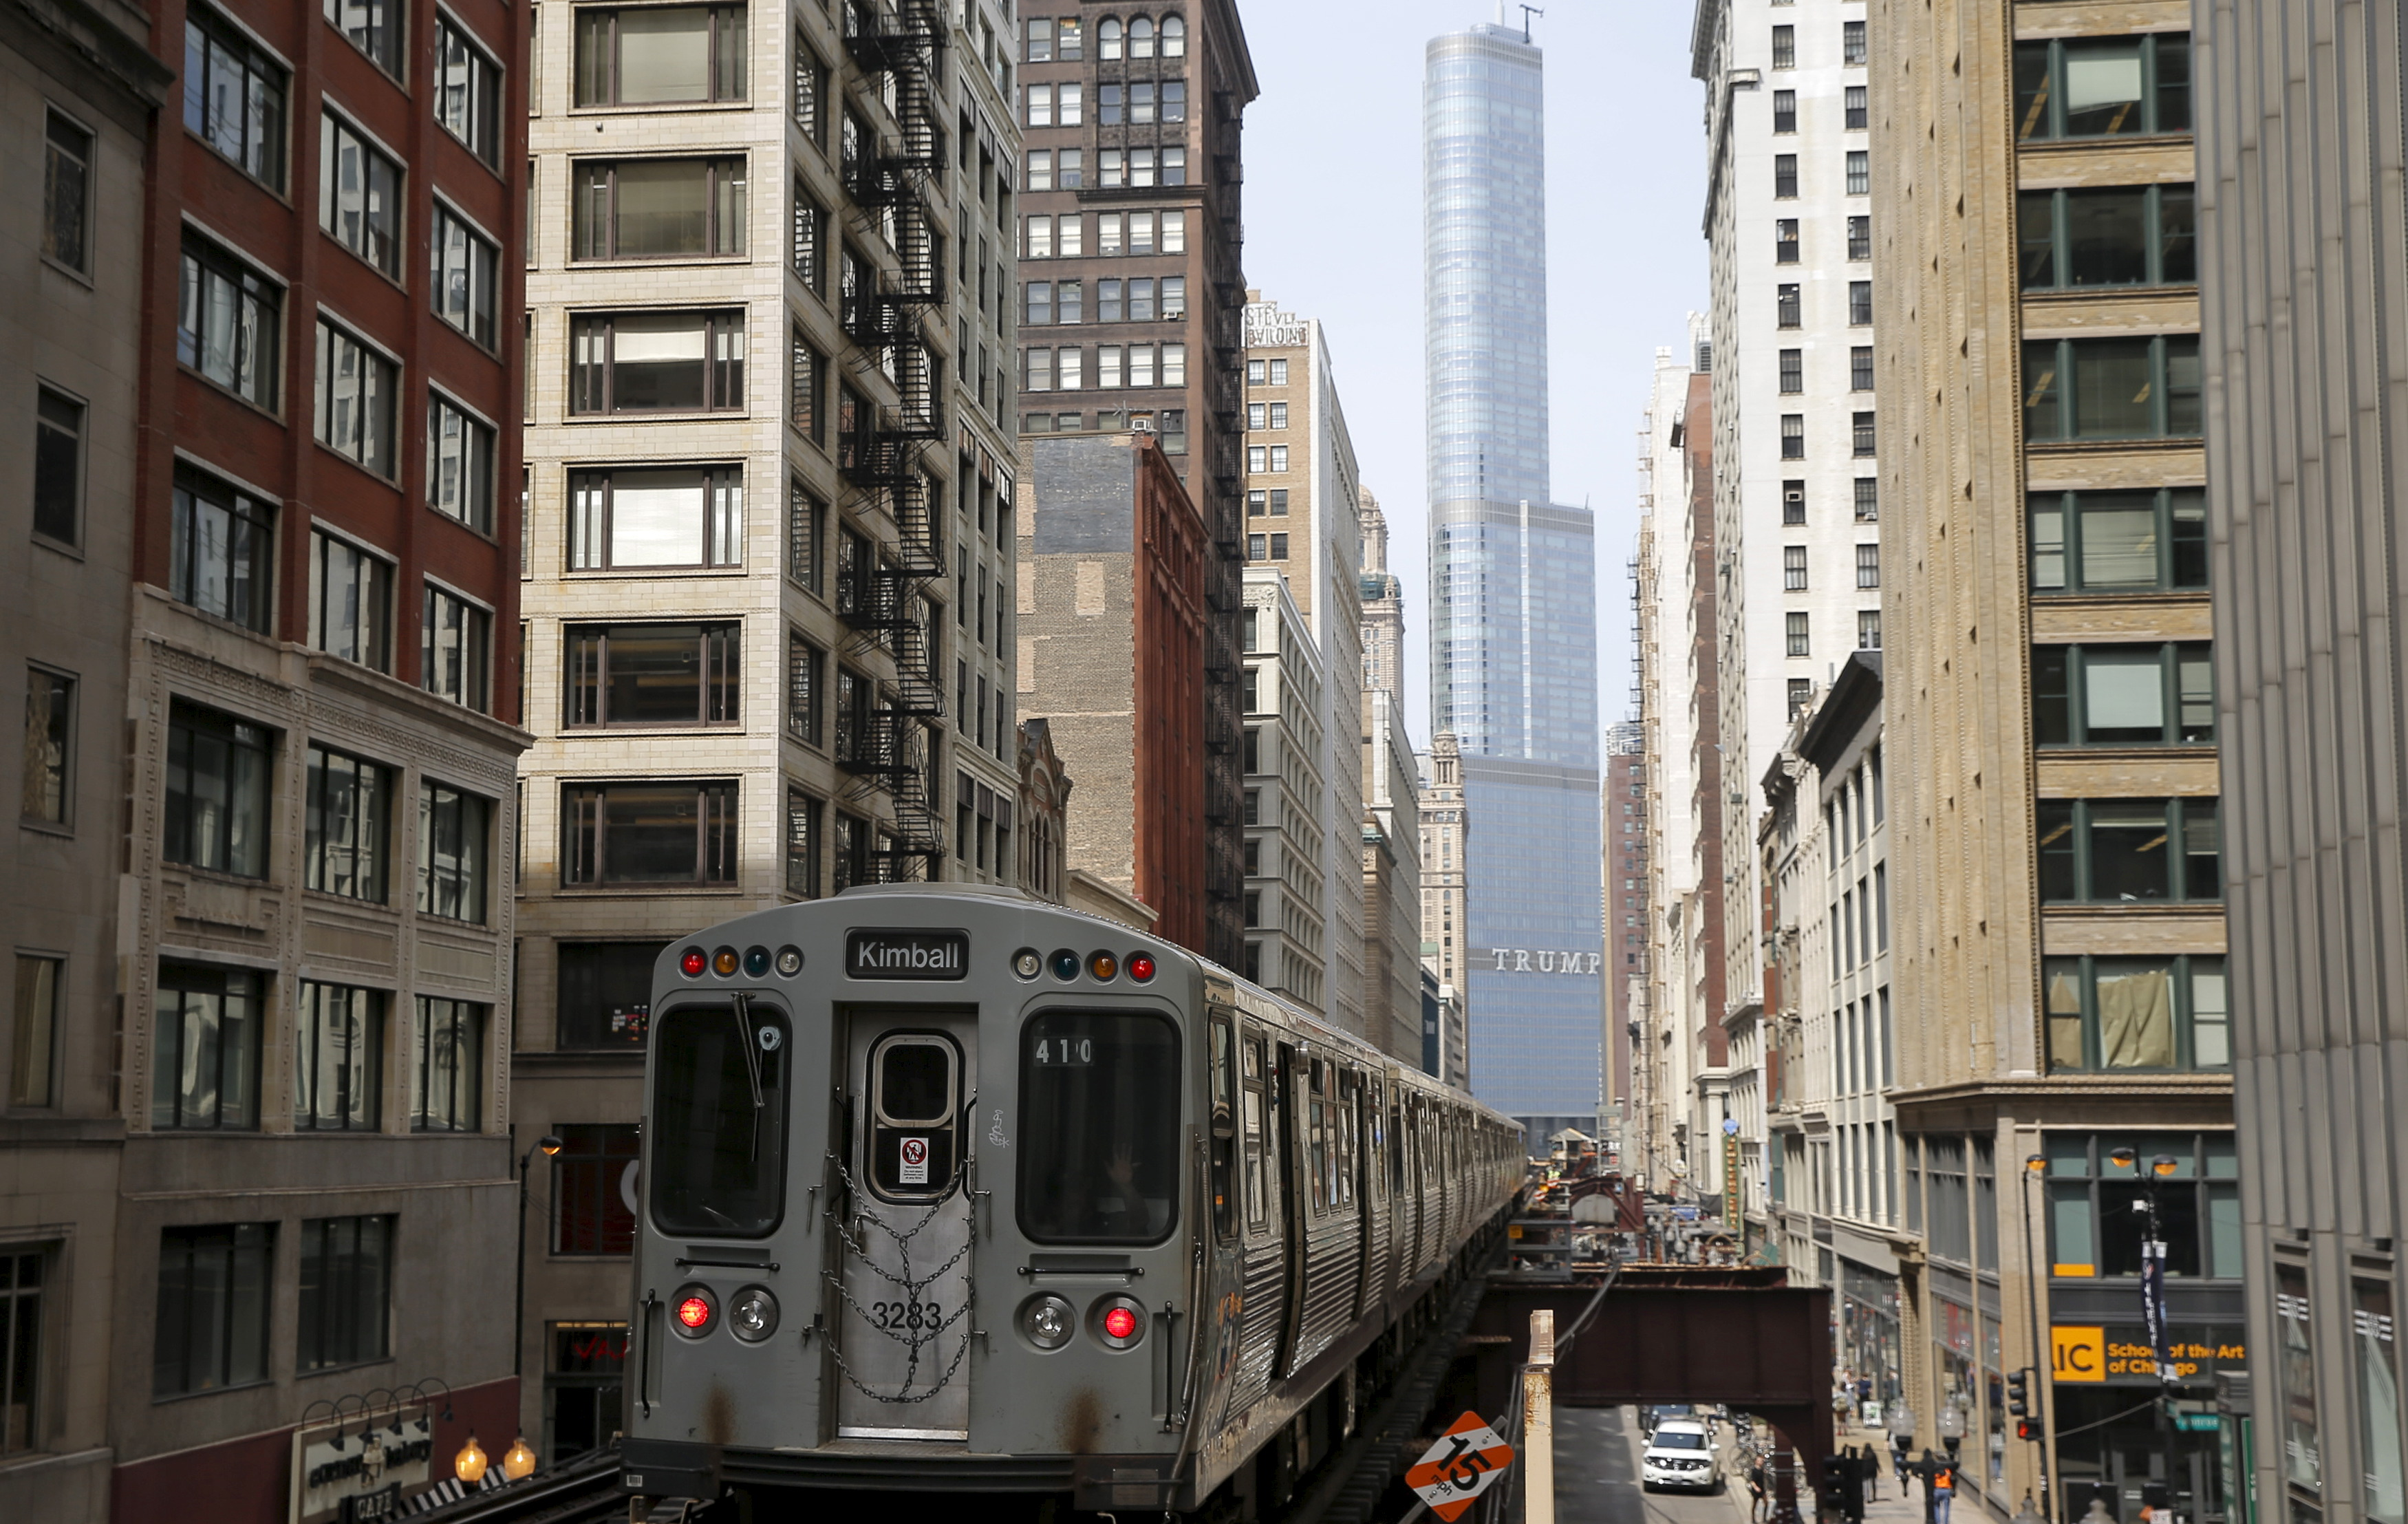 A subway car rides along the tracks towards The Trump International Hotel and Tower in downtown Chicago